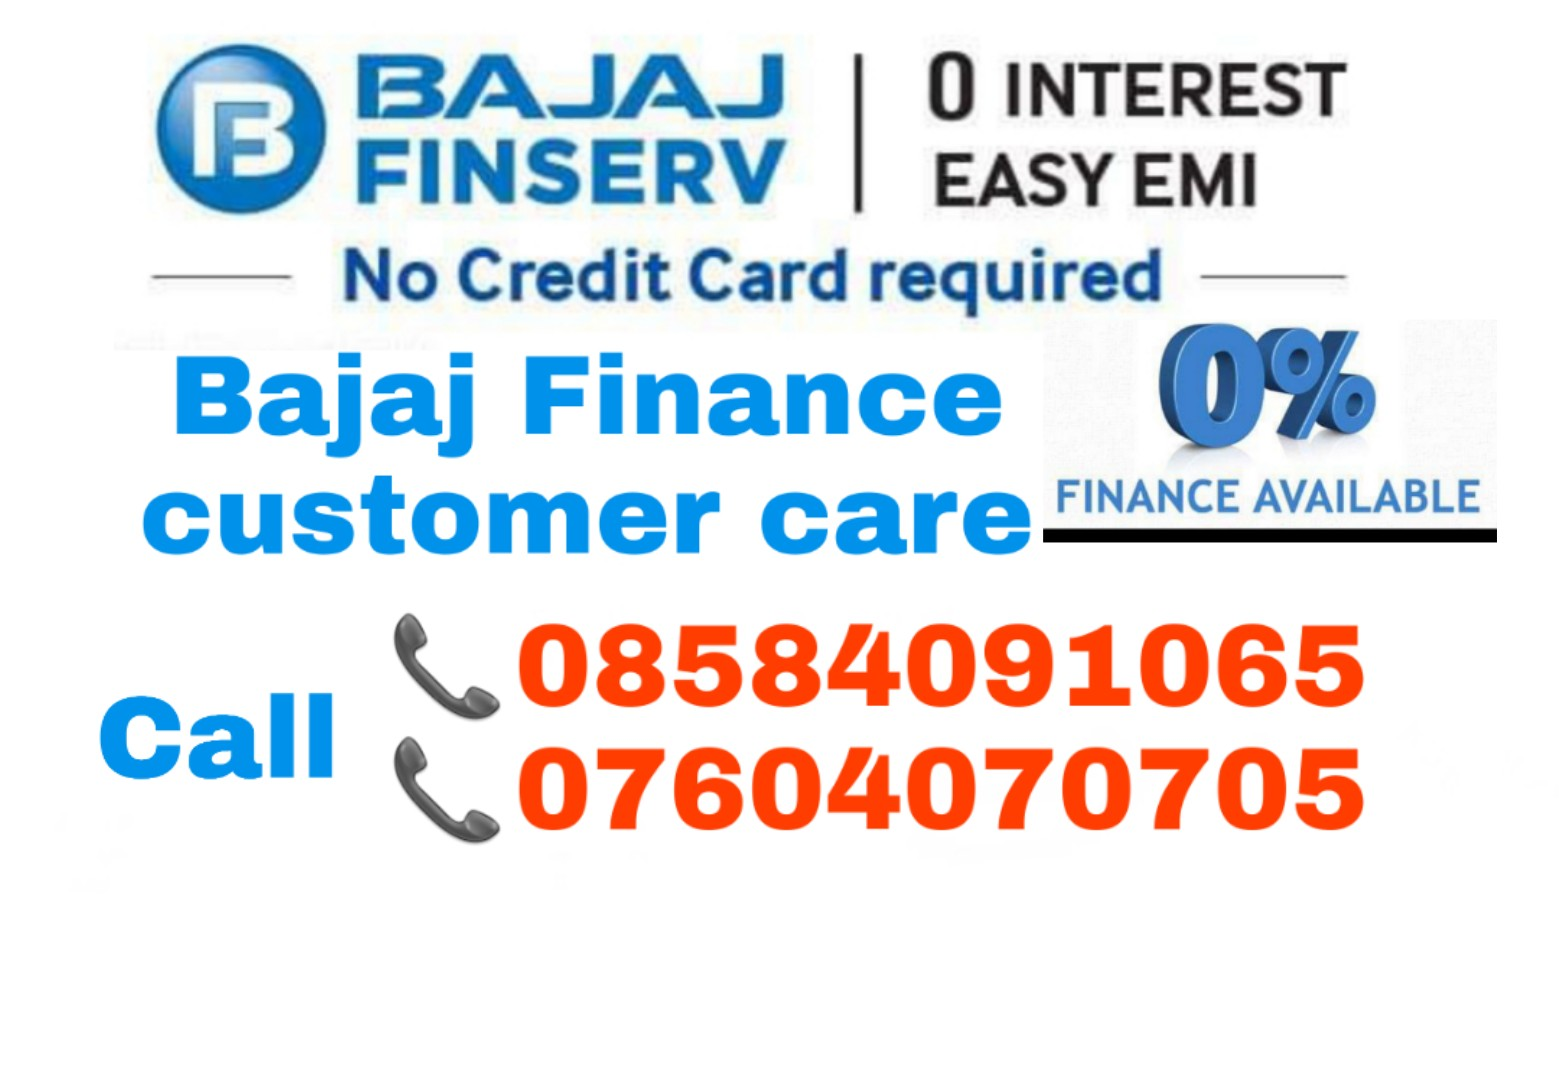 Bajaj Finance Personal Loan Customer Care Helpline In Karol Bagh Delhi 110005 Sulekha Delhi